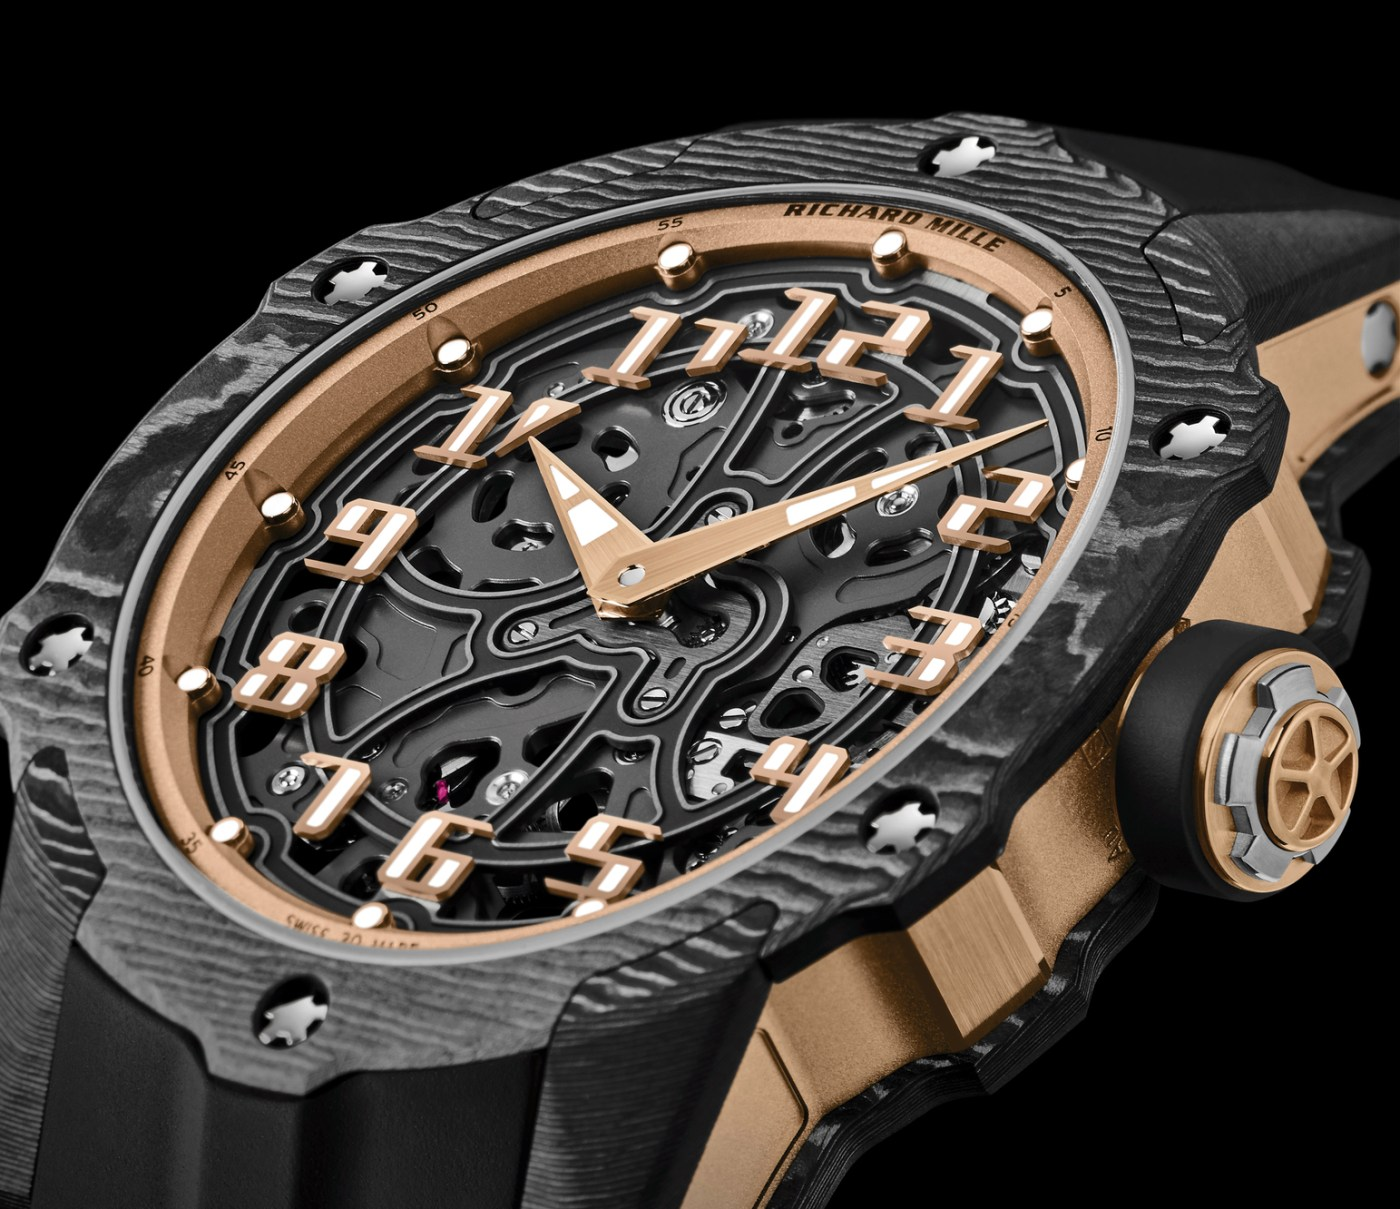 Richard Mille RM 33-02 Automatic close-up